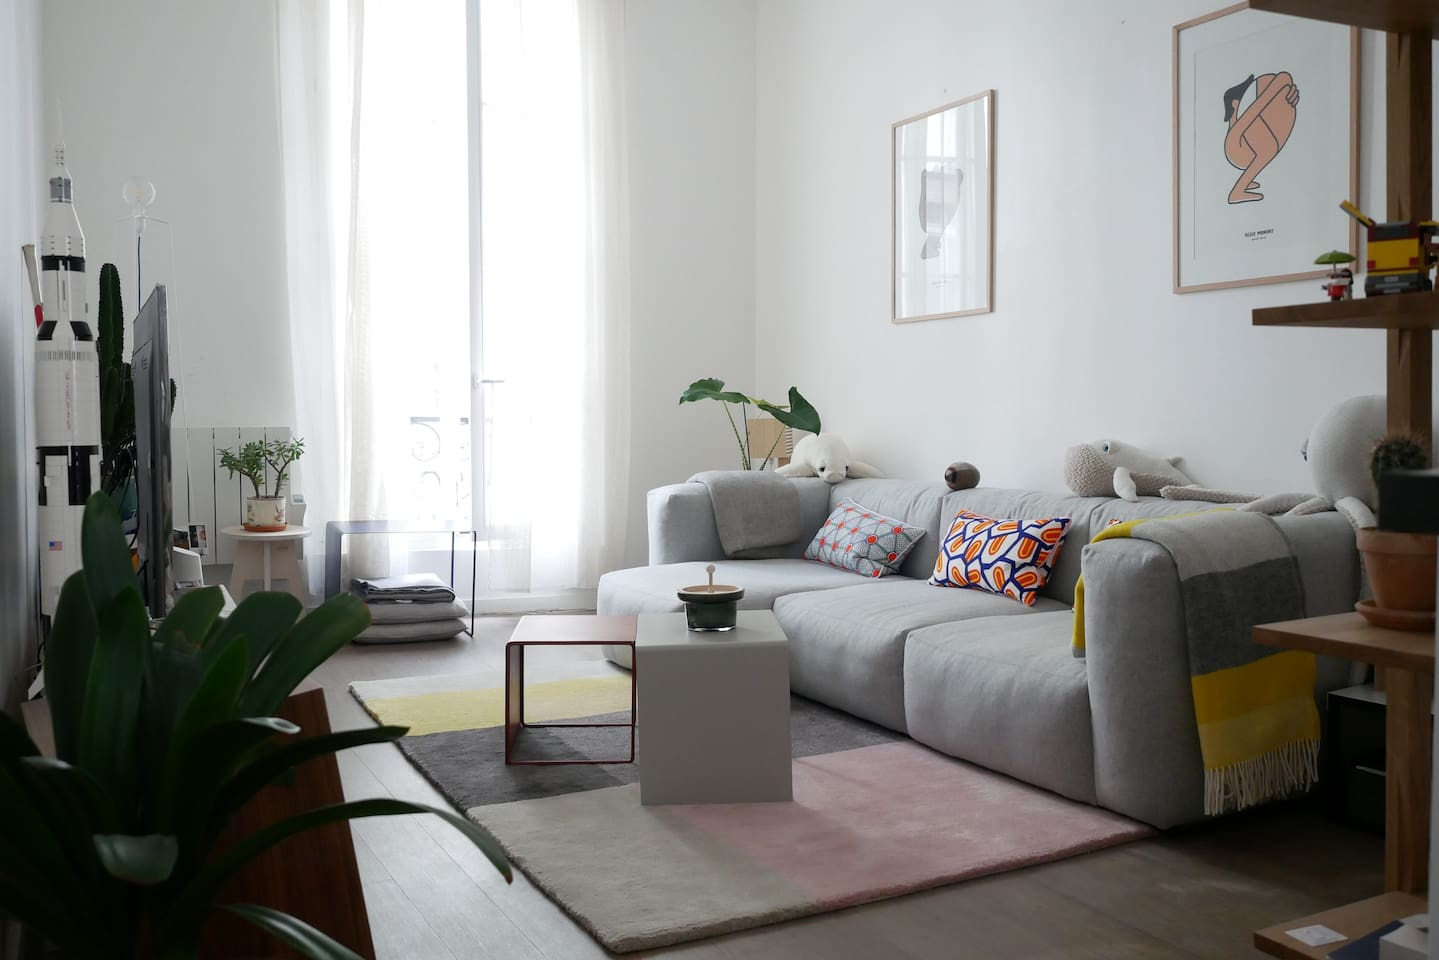 The bright living room!